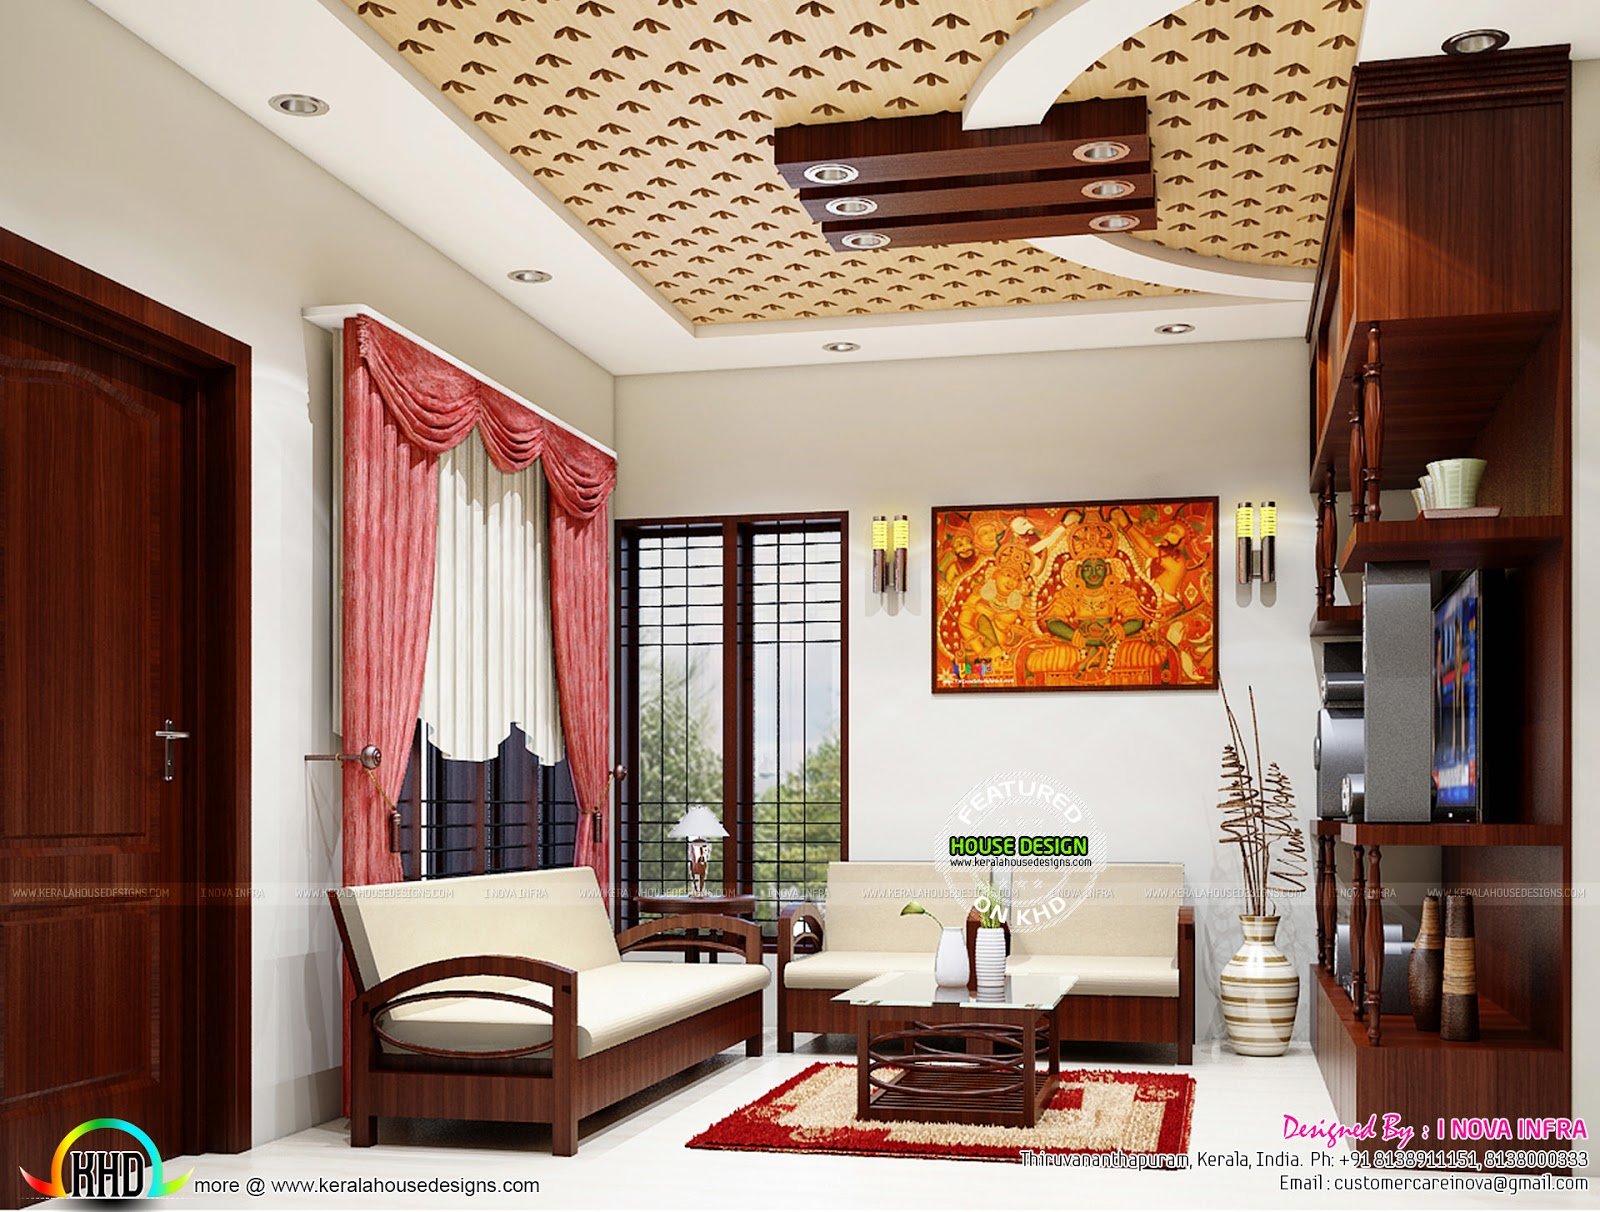 Kerala traditional interiors kerala home design and for Interior designs in kerala